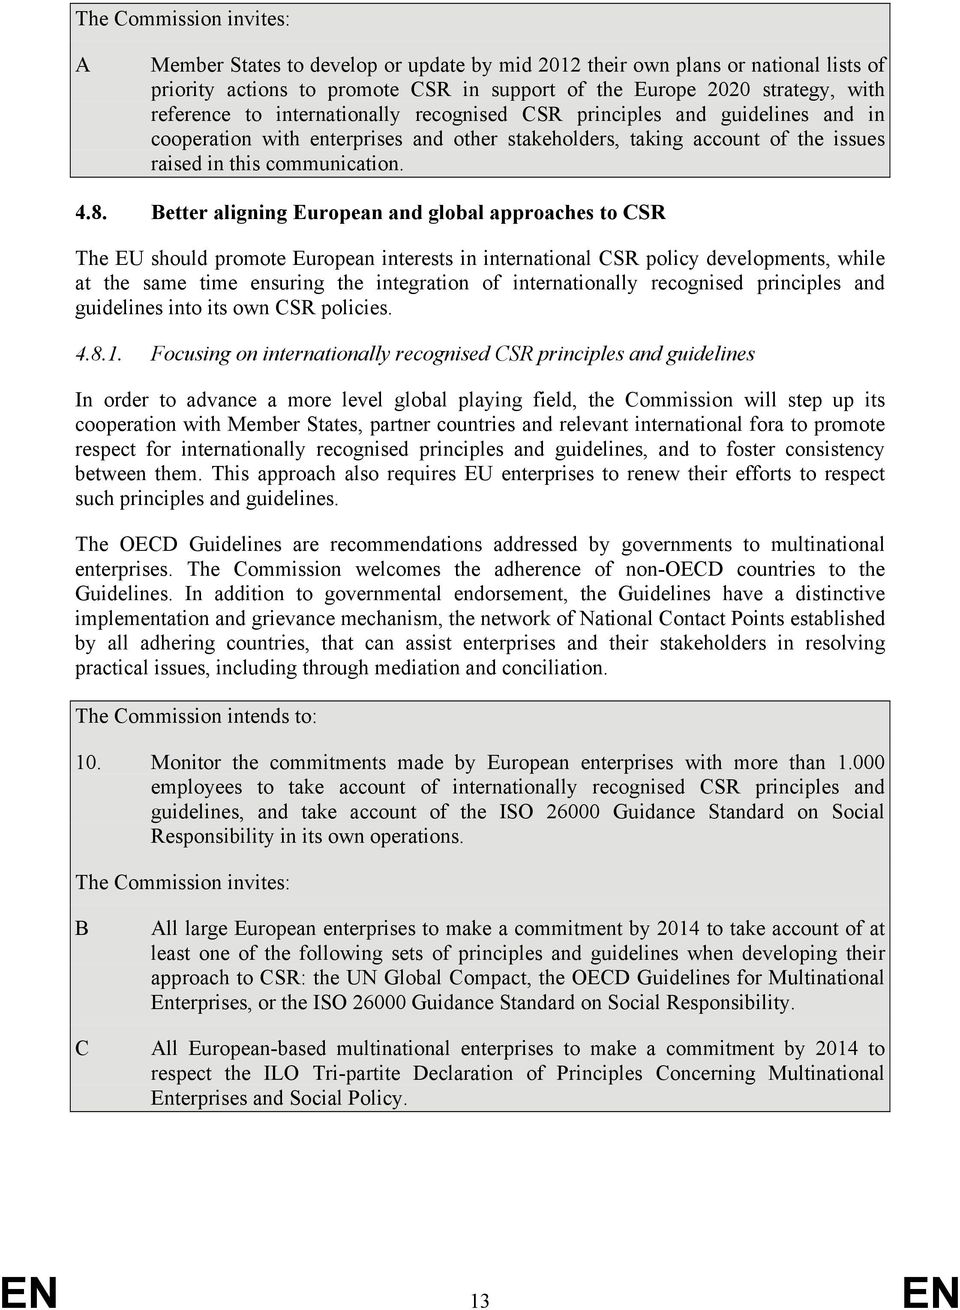 Better aligning European and global approaches to CSR The EU should promote European interests in international CSR policy developments, while at the same time ensuring the integration of